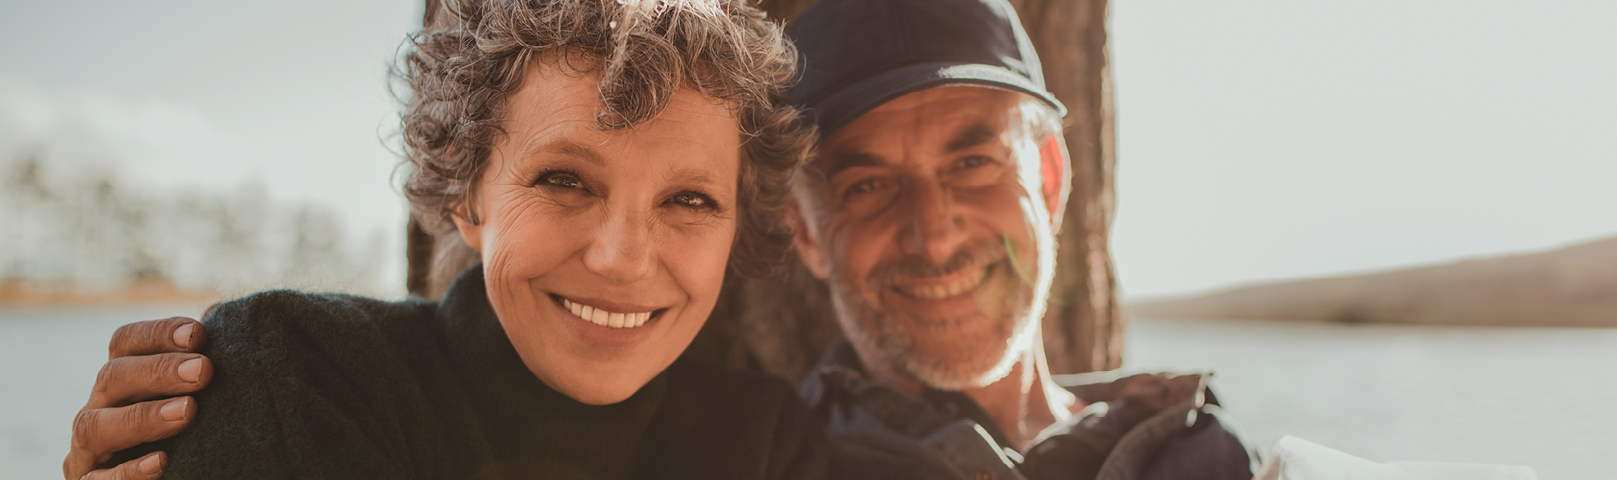 a mature couple smile while they pose for the camera in a bright and sunny scene